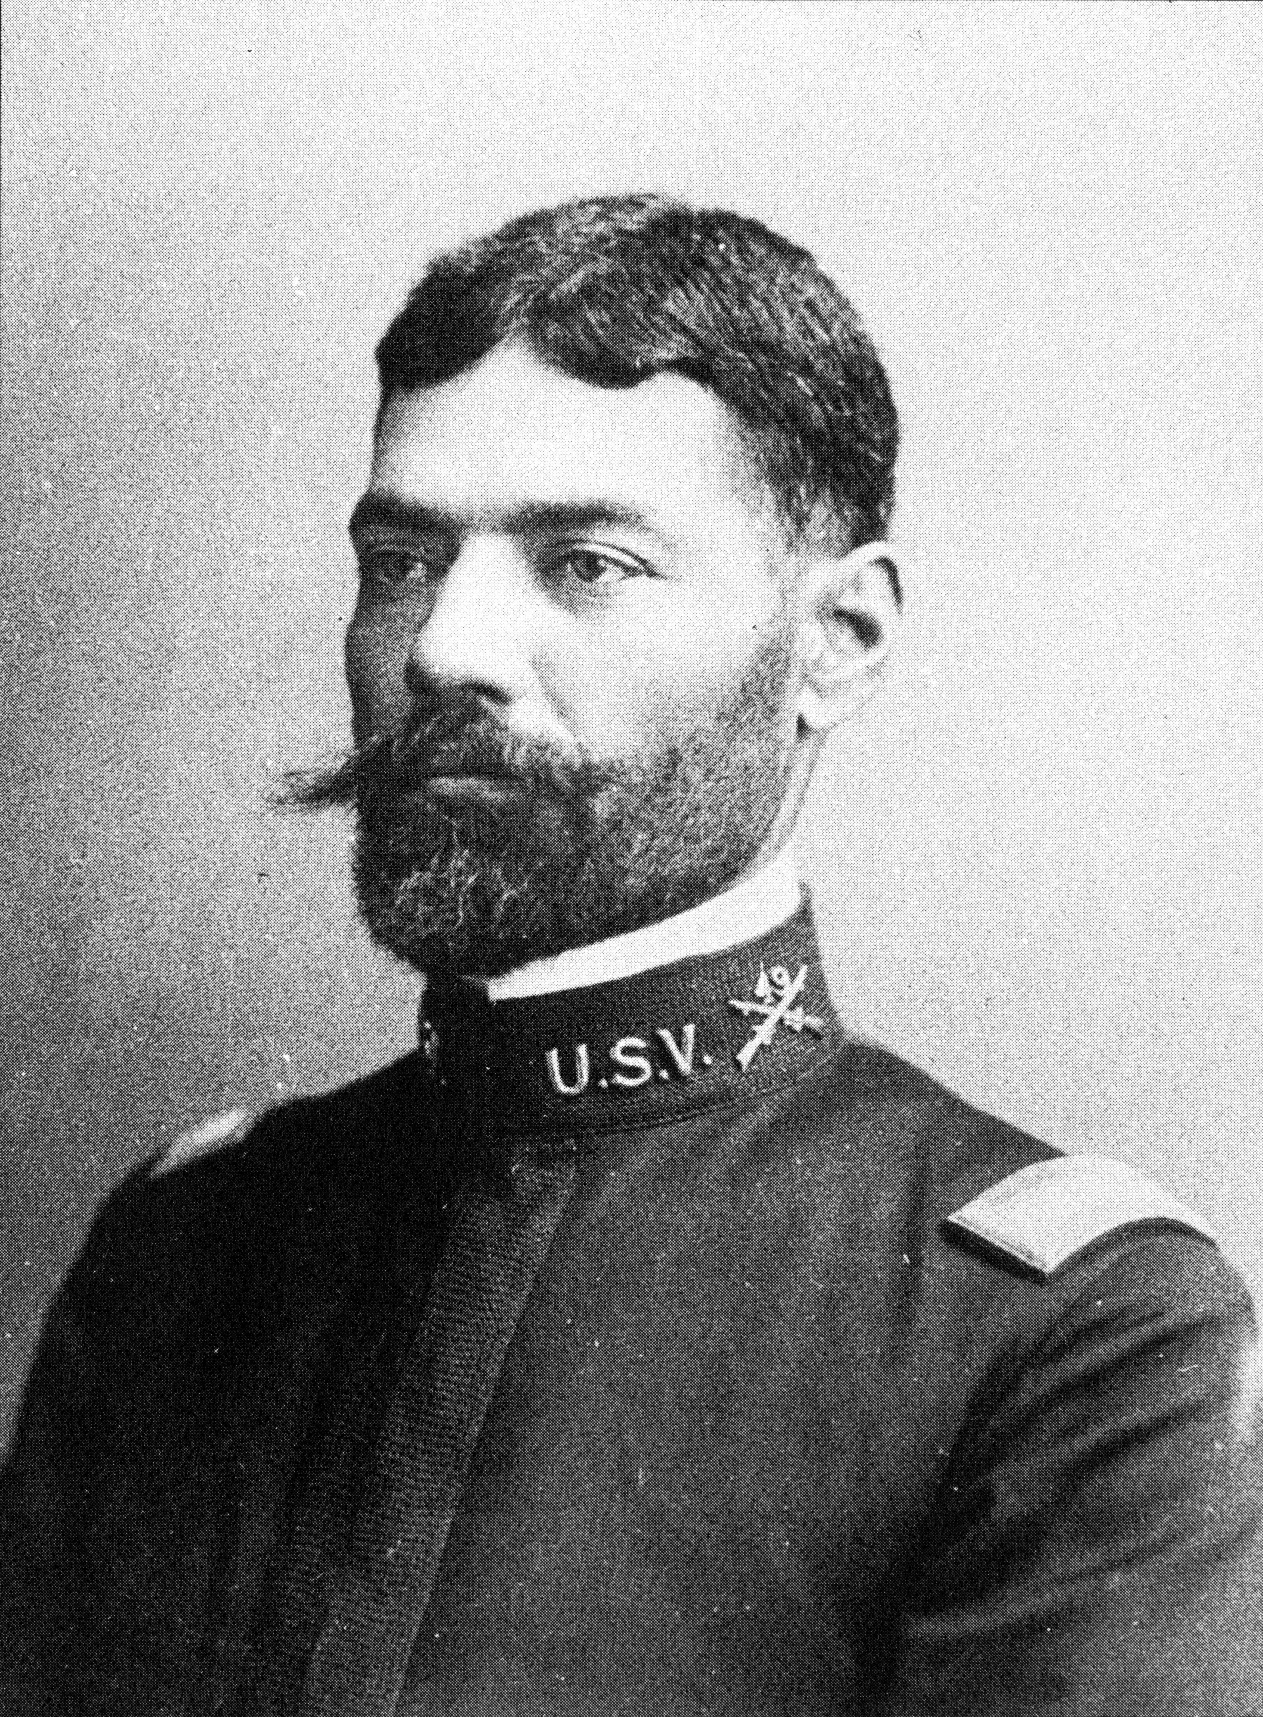 """Head and shoulders of a man with neatly combed hair and a handlebar mustache wearing a plain military jacket with the letters """"U.S.V."""" on the upright collar."""